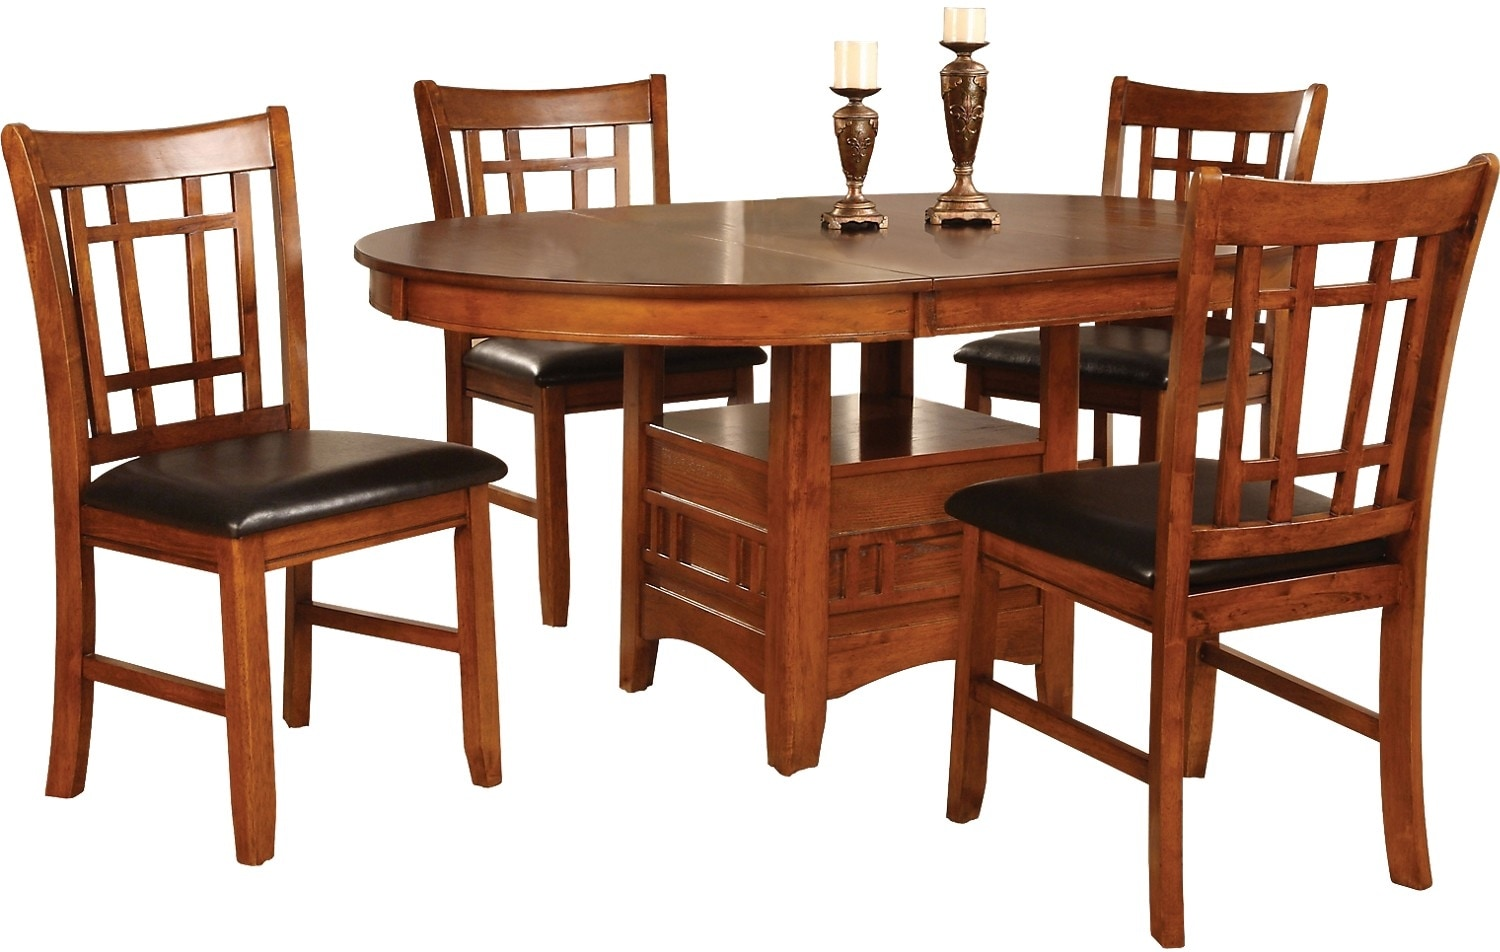 Dining Room Furniture - Dalton 5 Piece Oak Dining Package